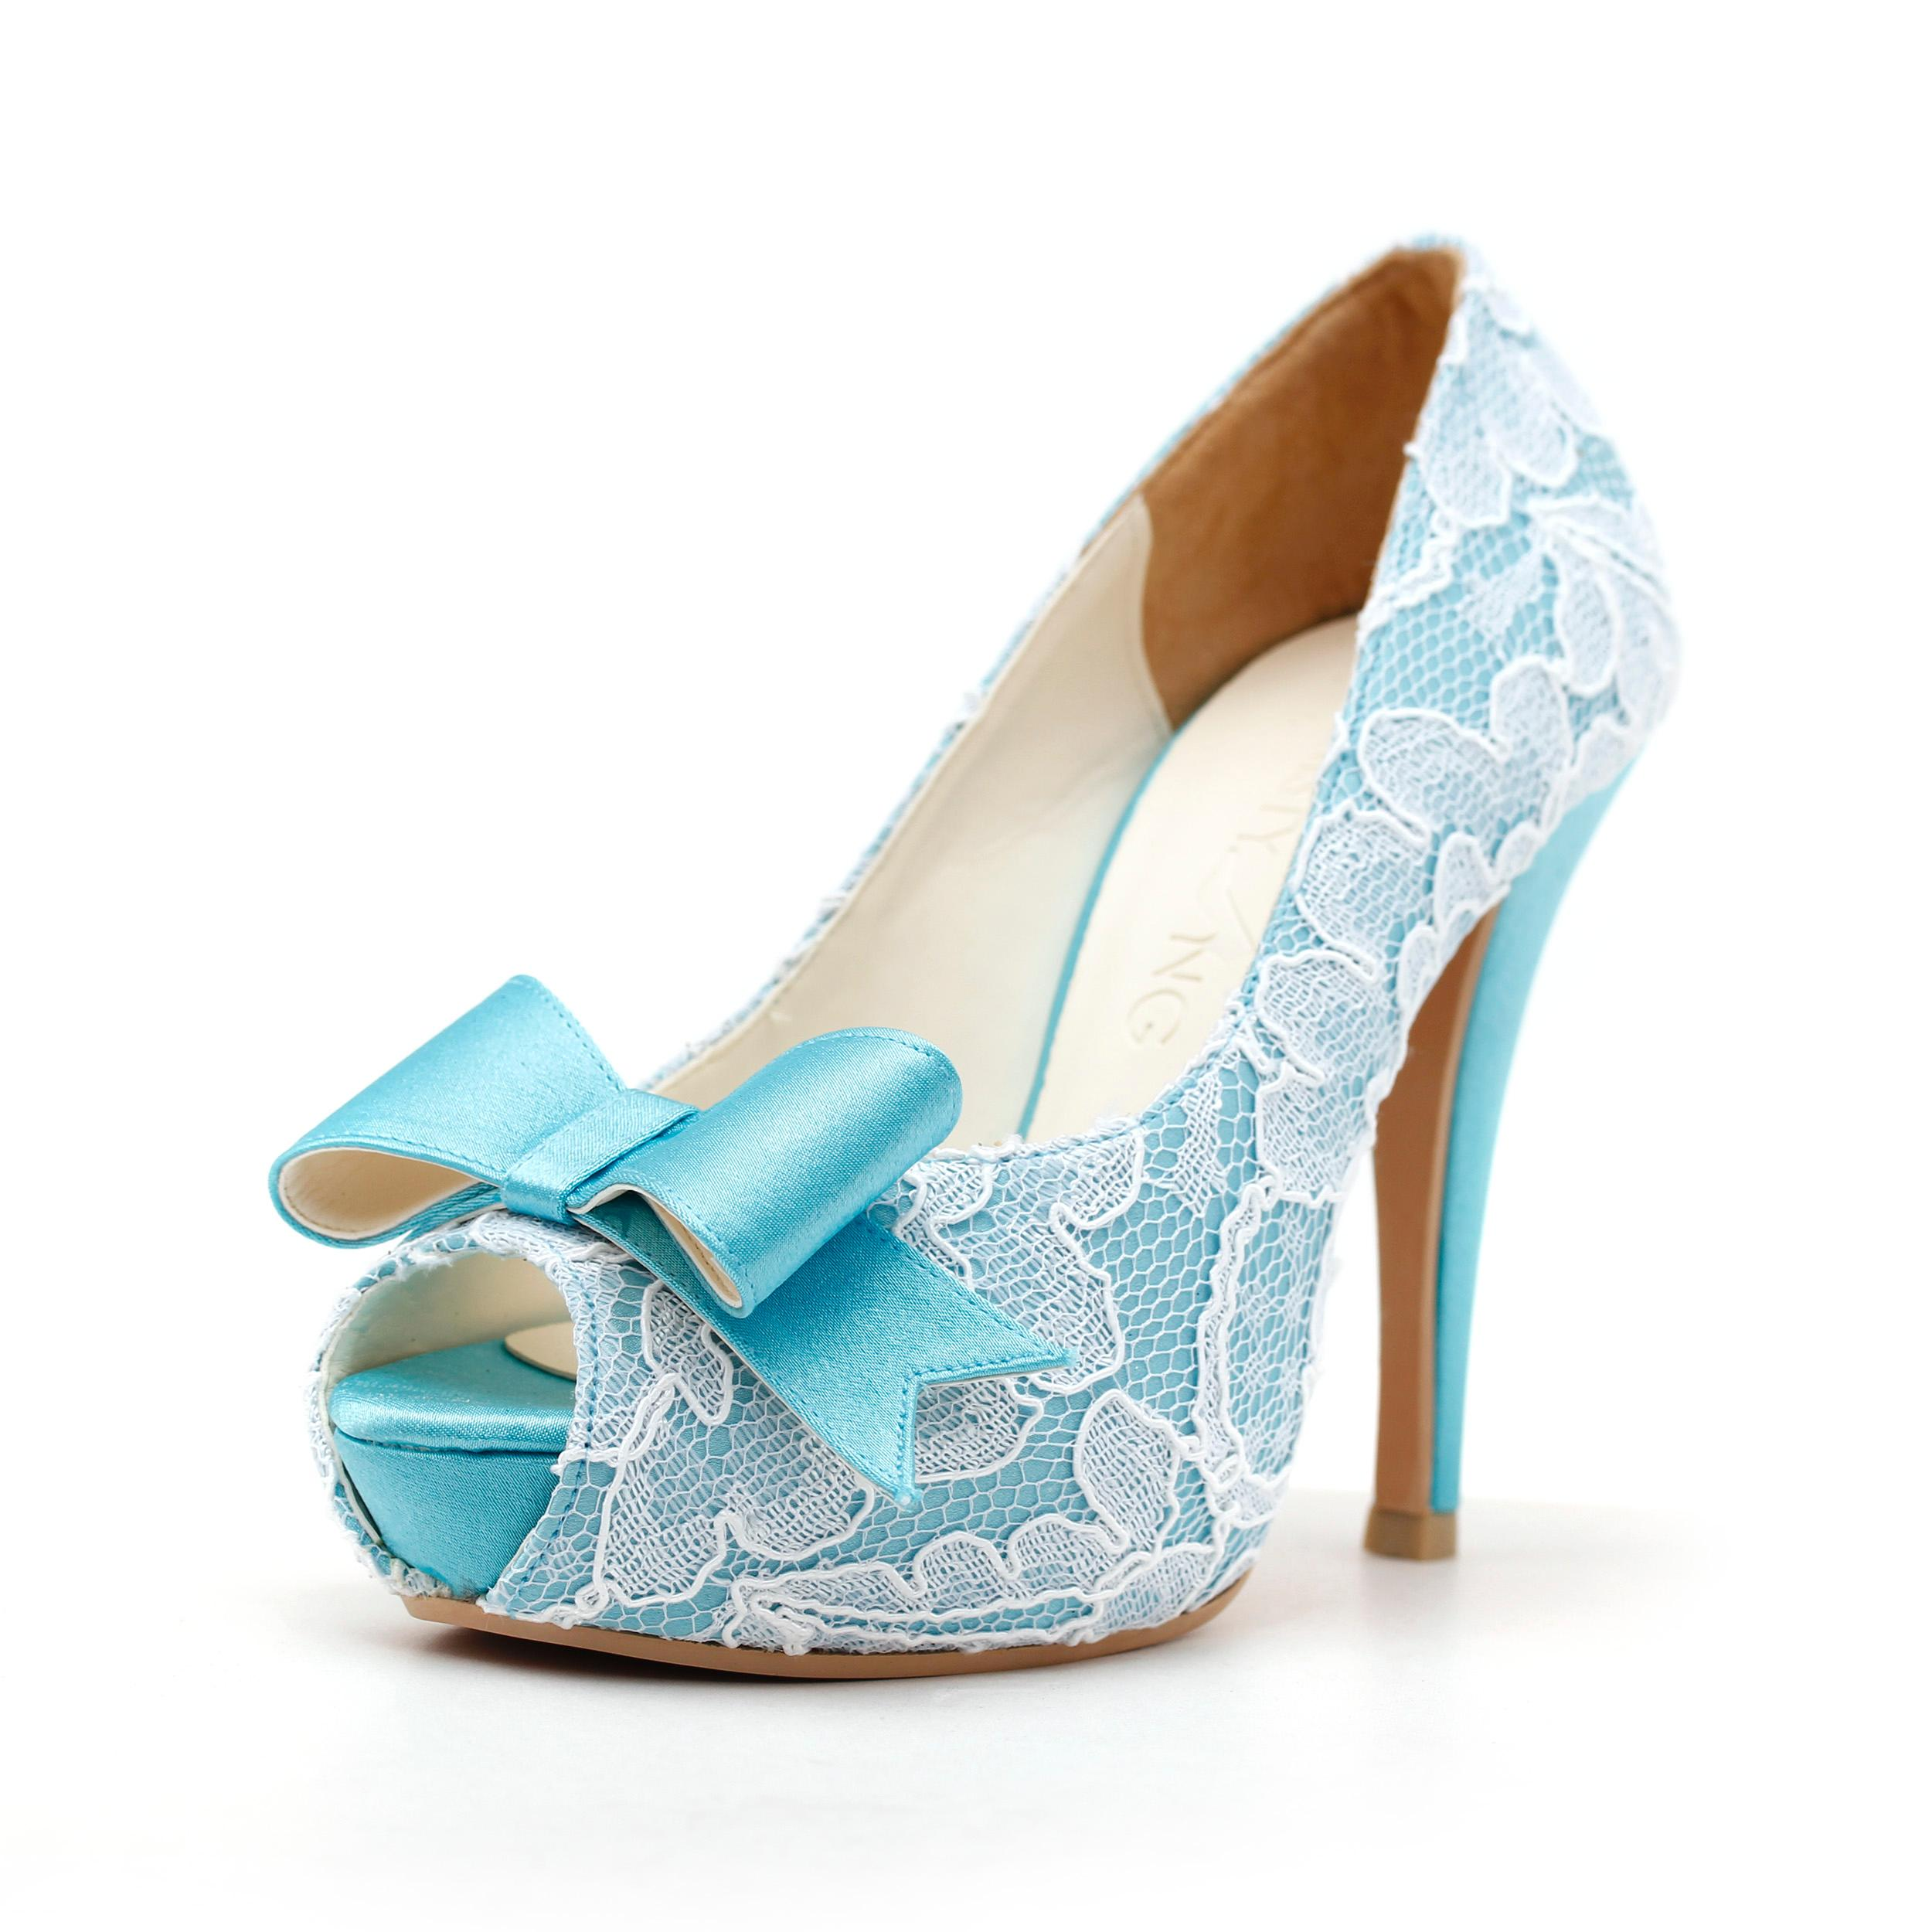 Sky blue lace shoes for bridal